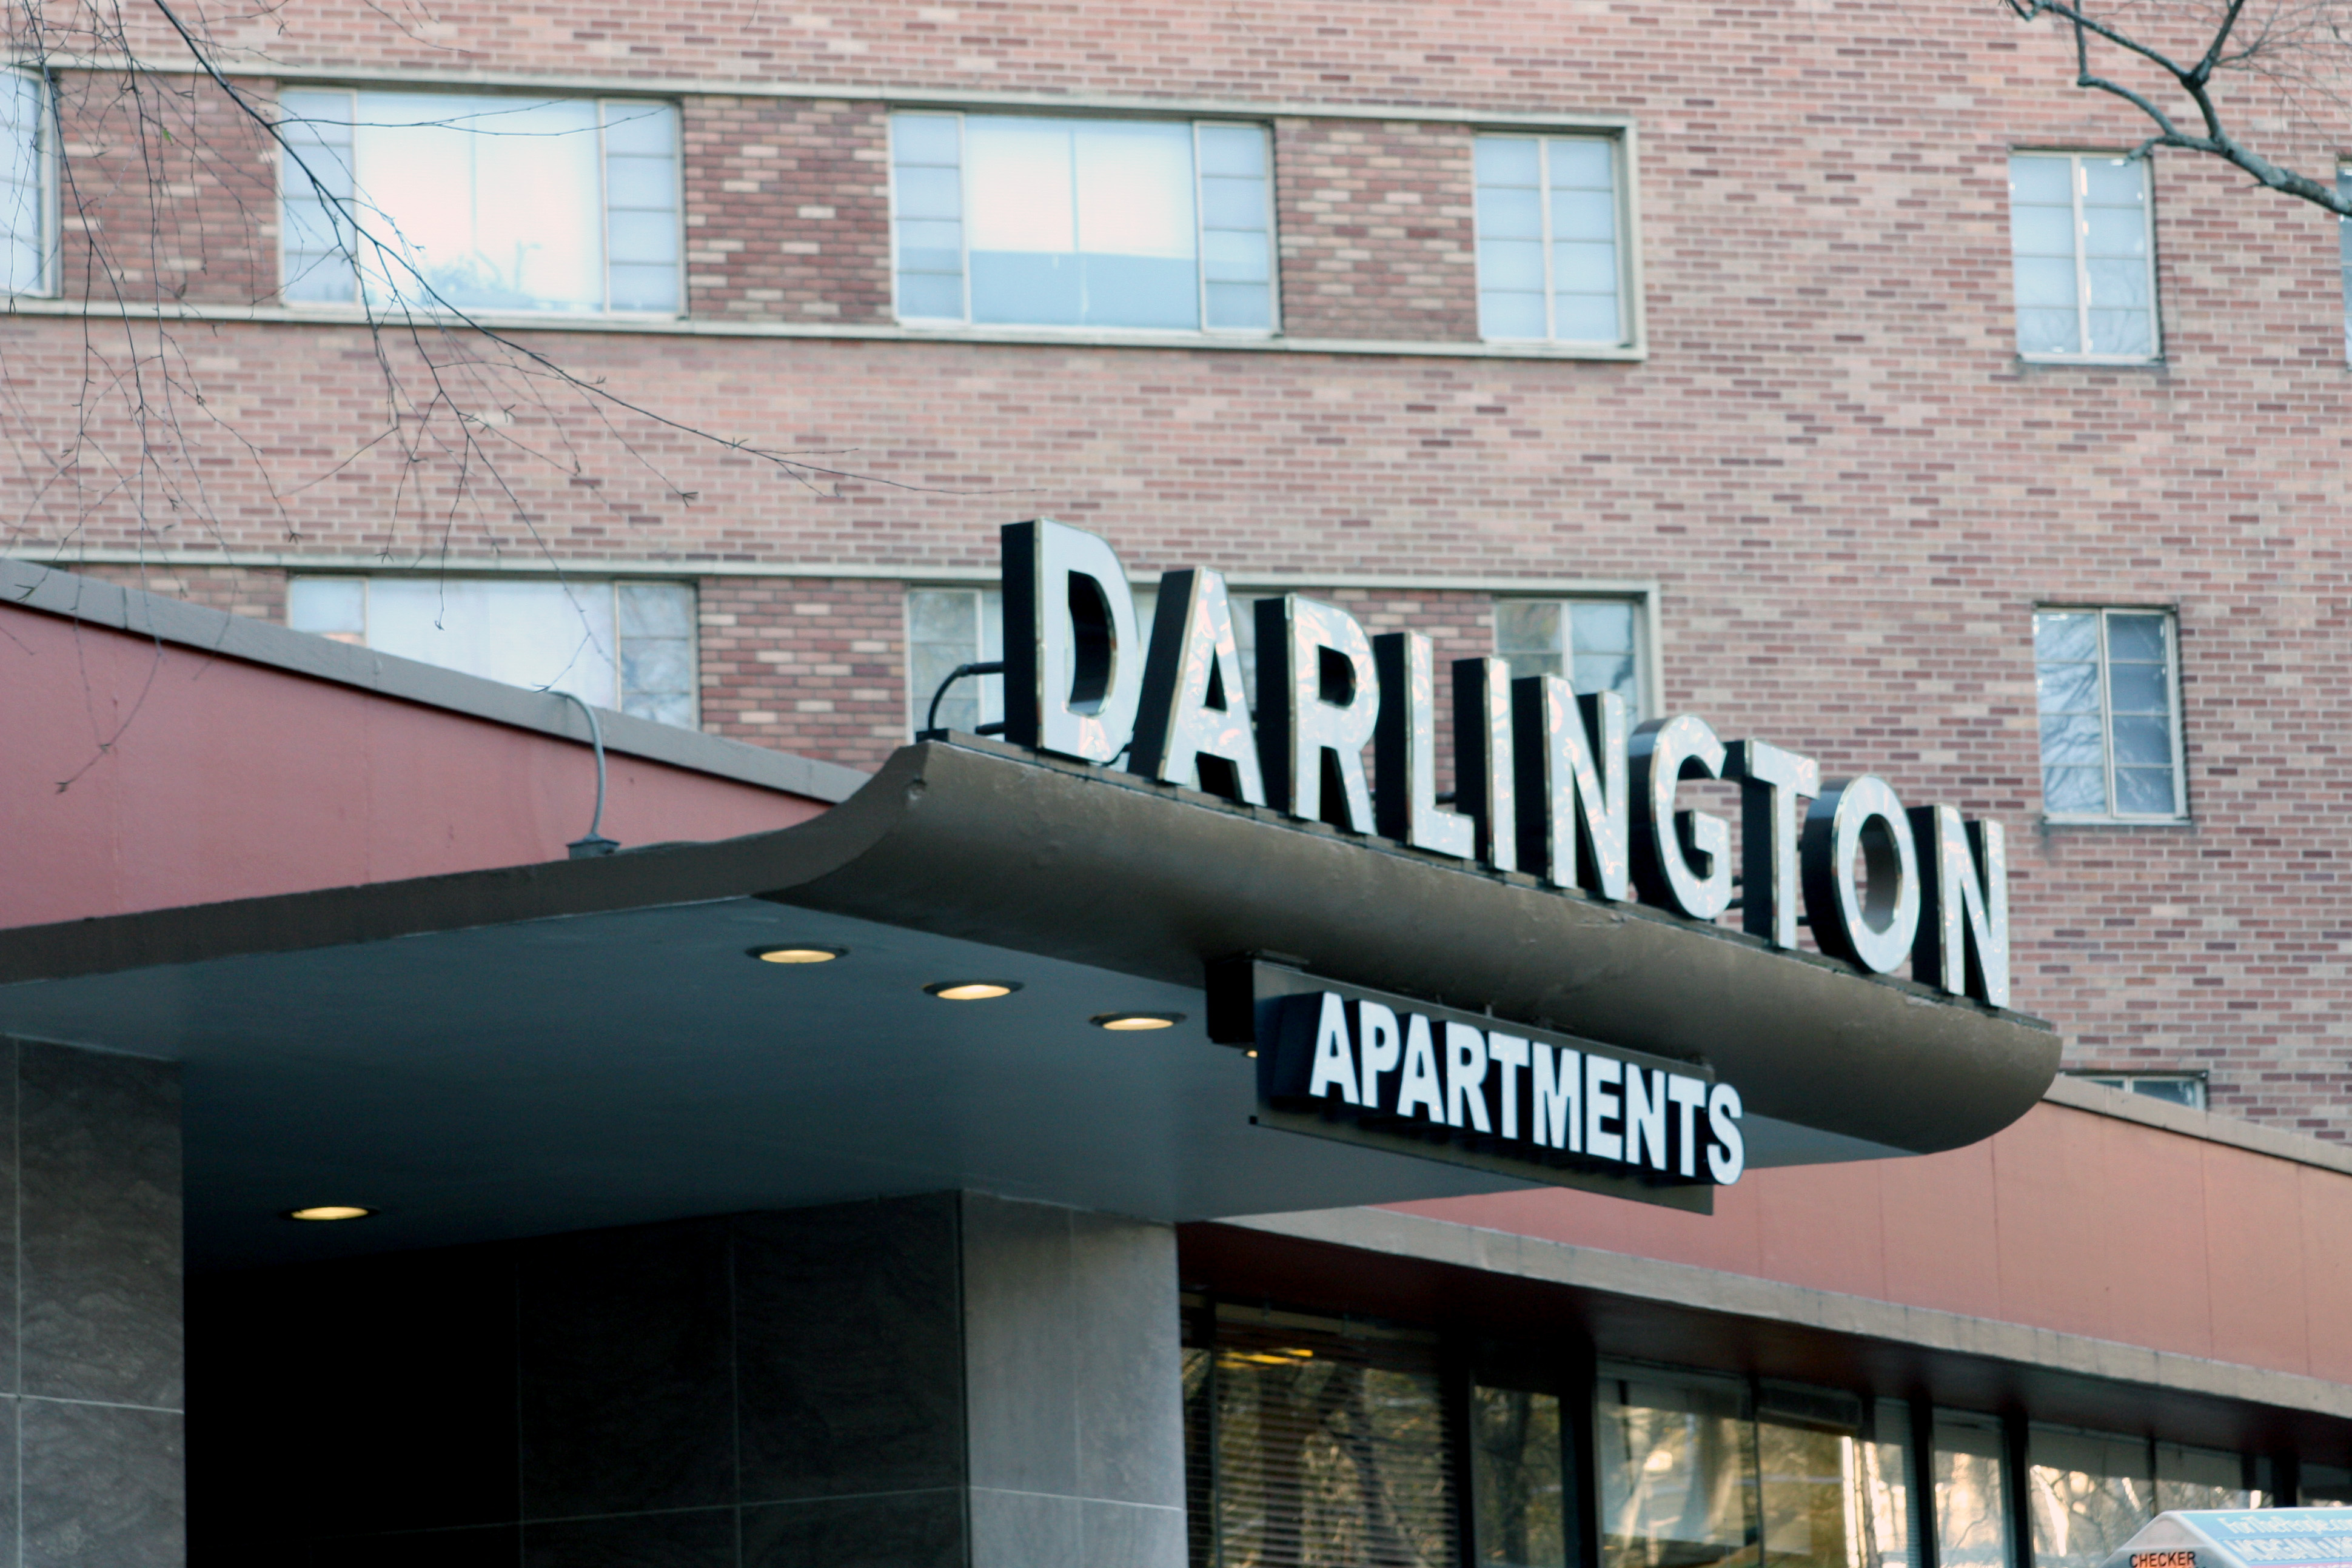 Police Say They Are Often Called To Apartment Building Where Woman Was Shot And Wounded Atlanta Recorded 438 Calls The Darlington